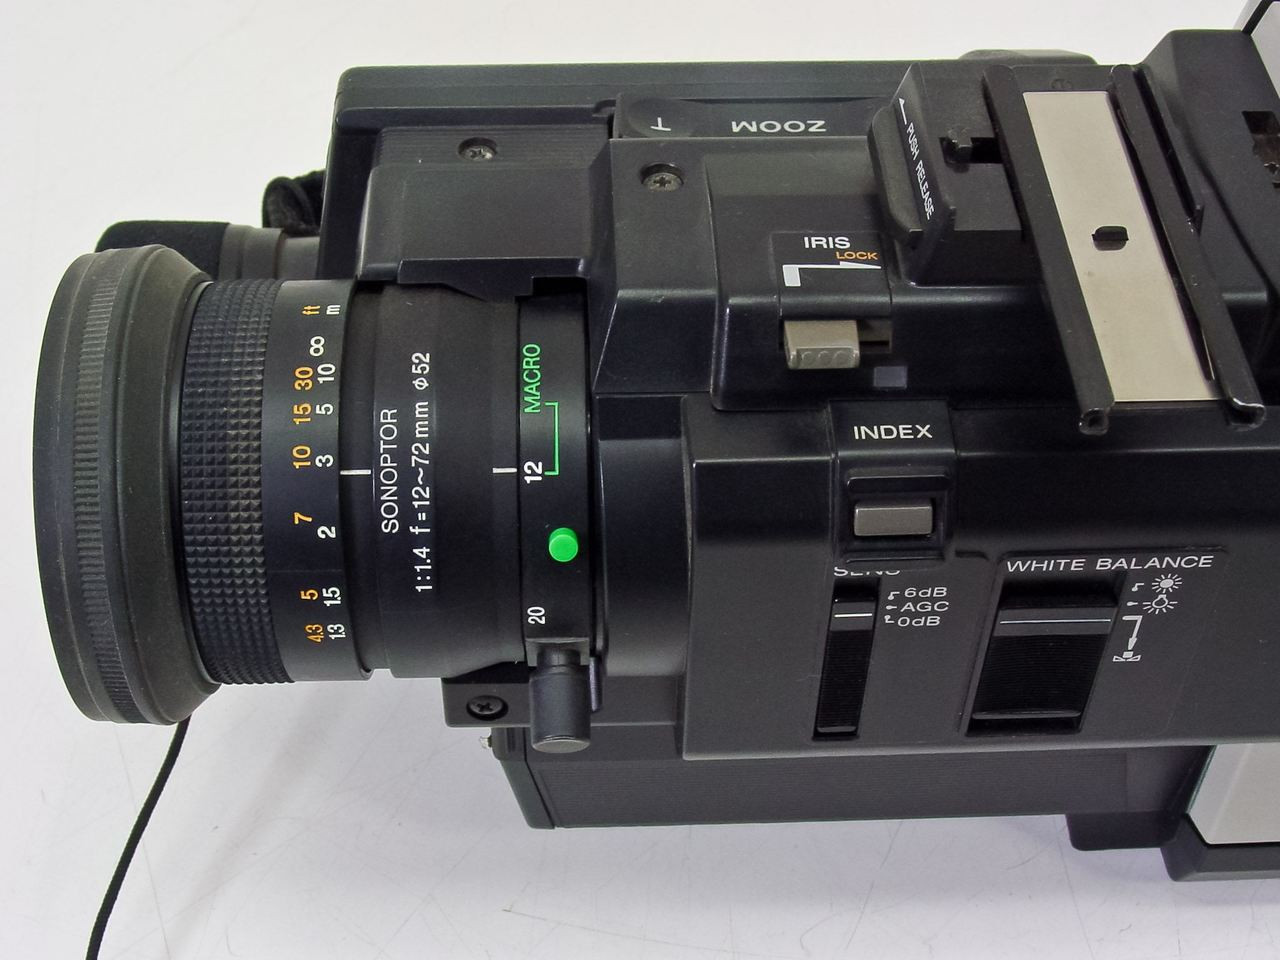 Sony Gcs 1 Superbetamovie Dc9 6v Camcorder Parts Only Cabinet Diagram And List For Camcorderparts Model